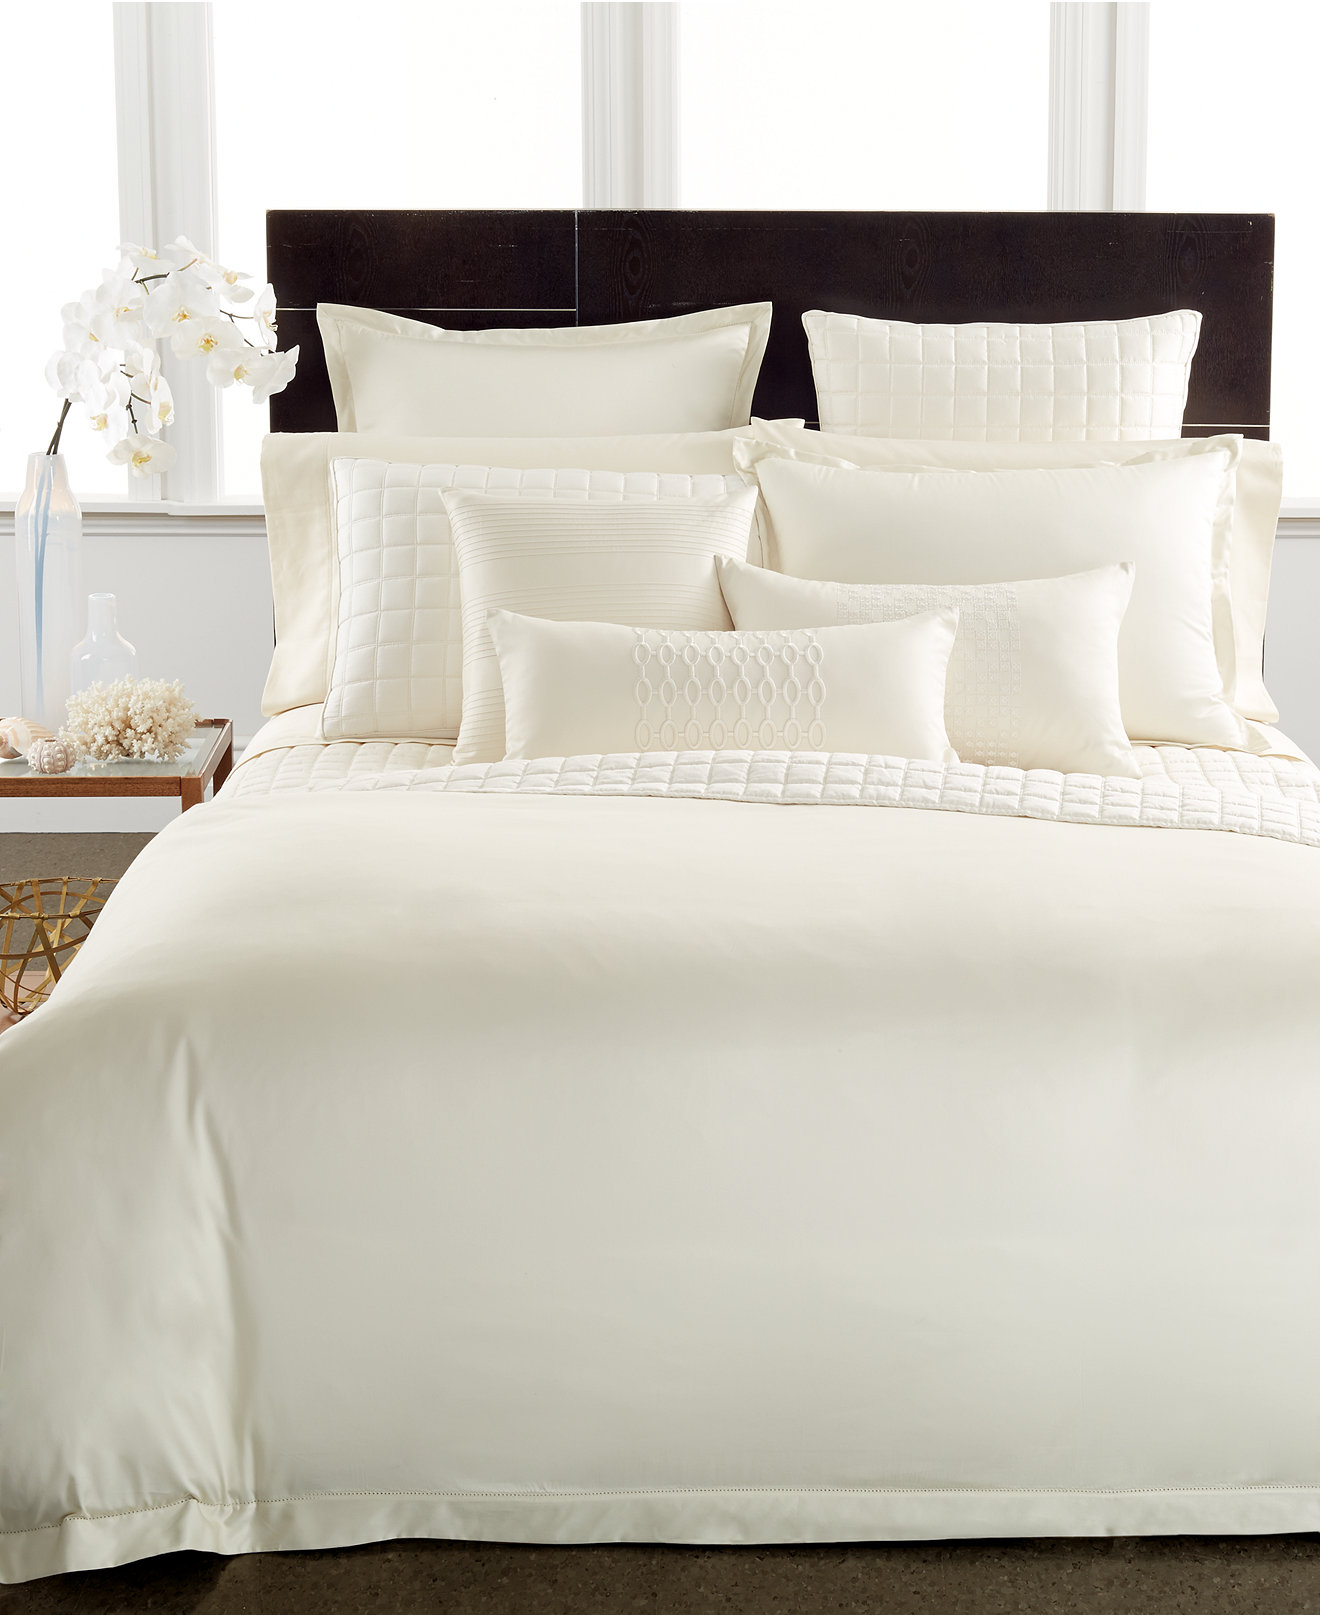 King Sheets Deep Pockets | Best Wrinkle Free Sheets | Egyptian Cotton Sheets